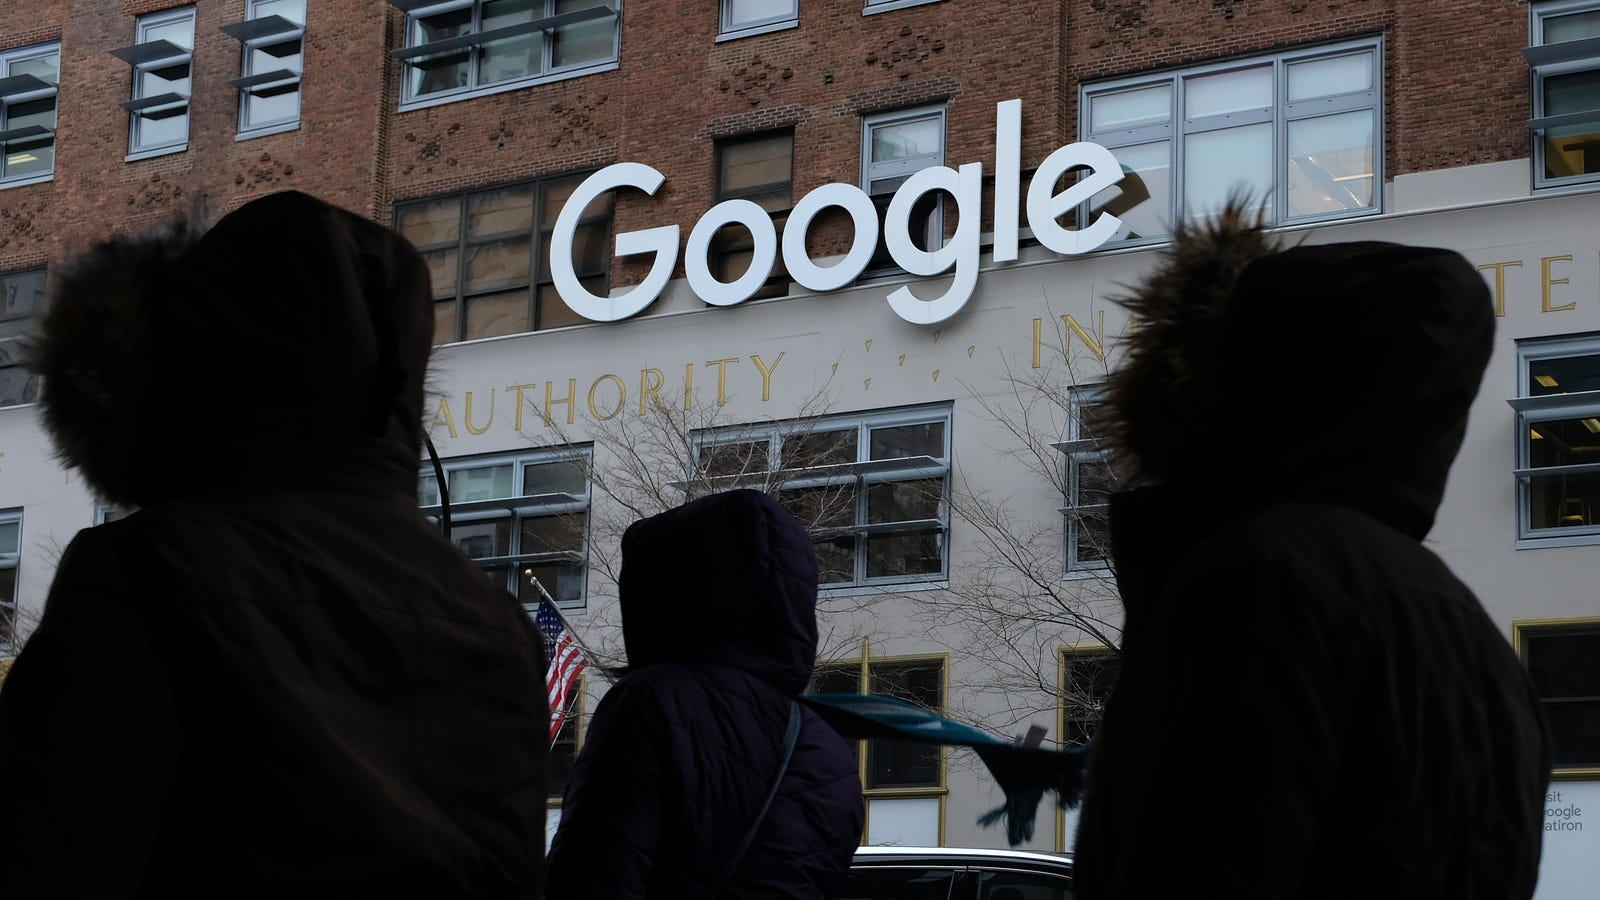 Ex-Google Employee's Memo Says Executives Shut Down Pro-Diversity Discussions